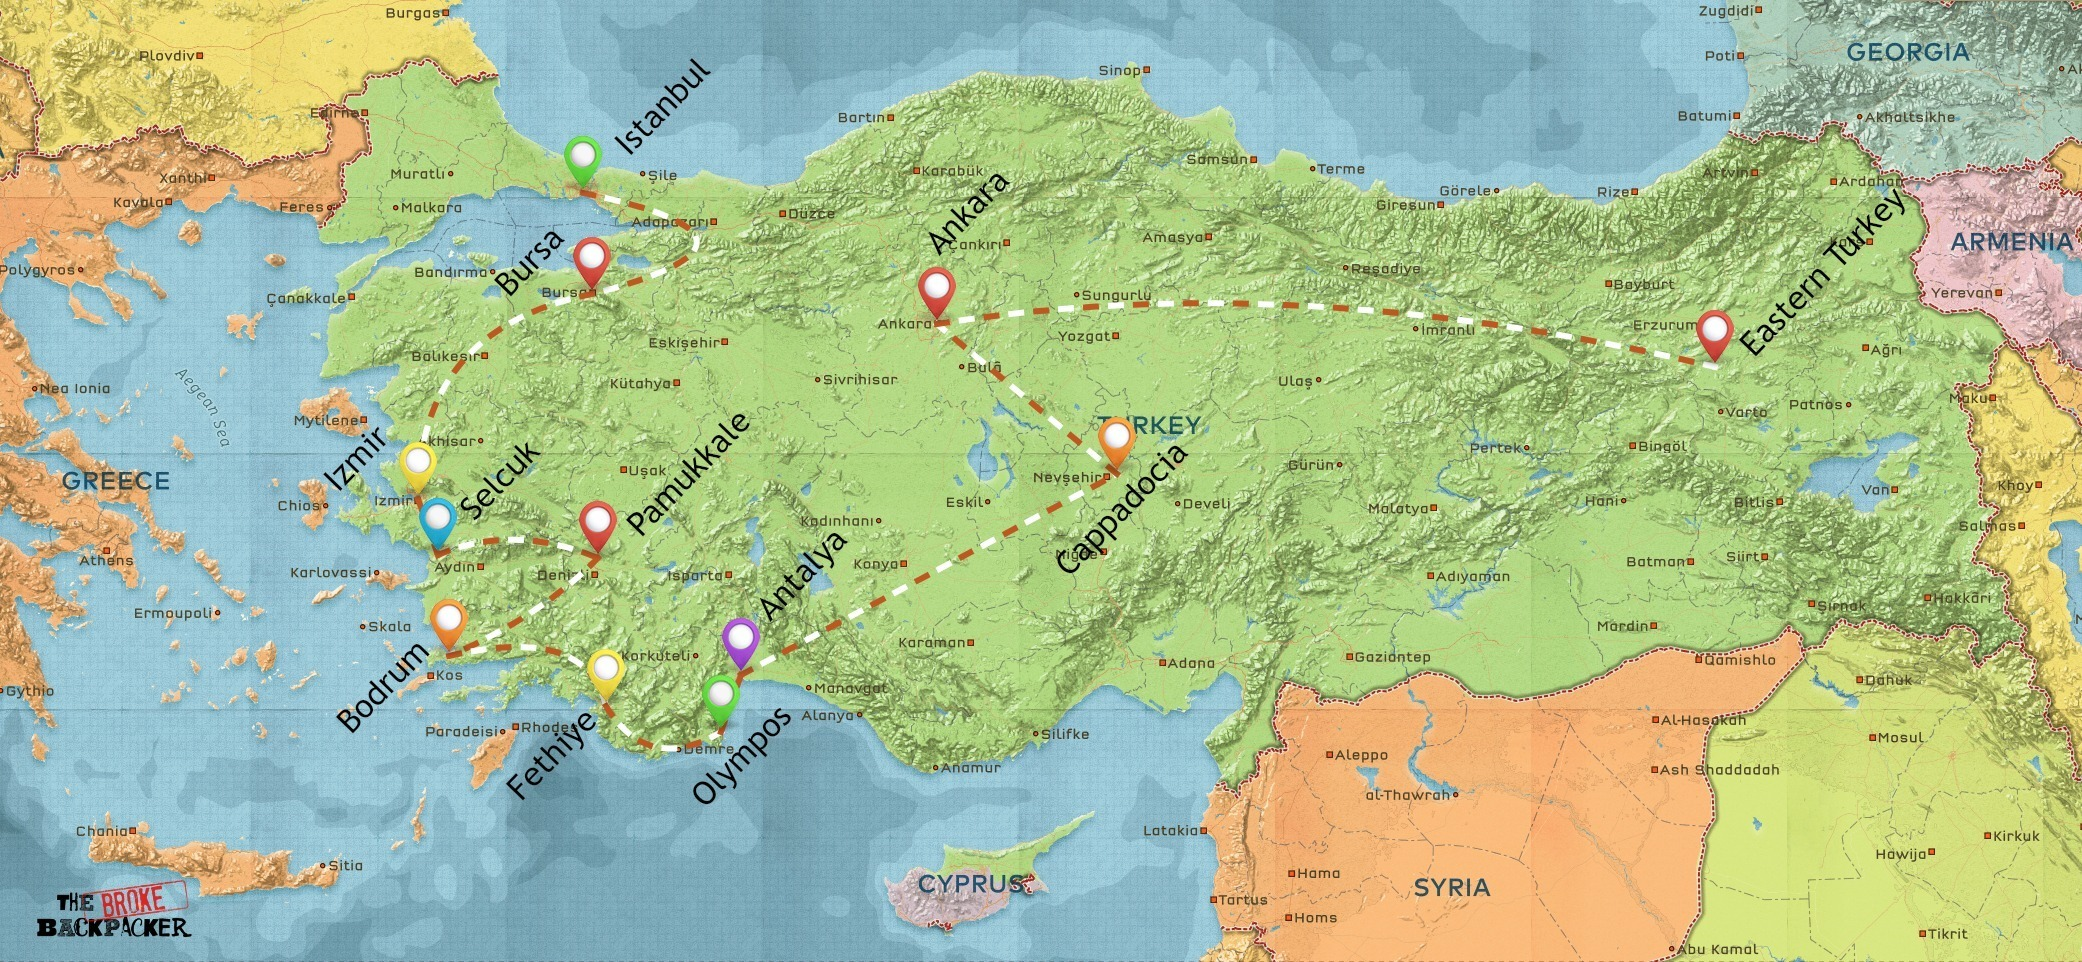 backpacking-turkey-itinerary-map-4-weeks